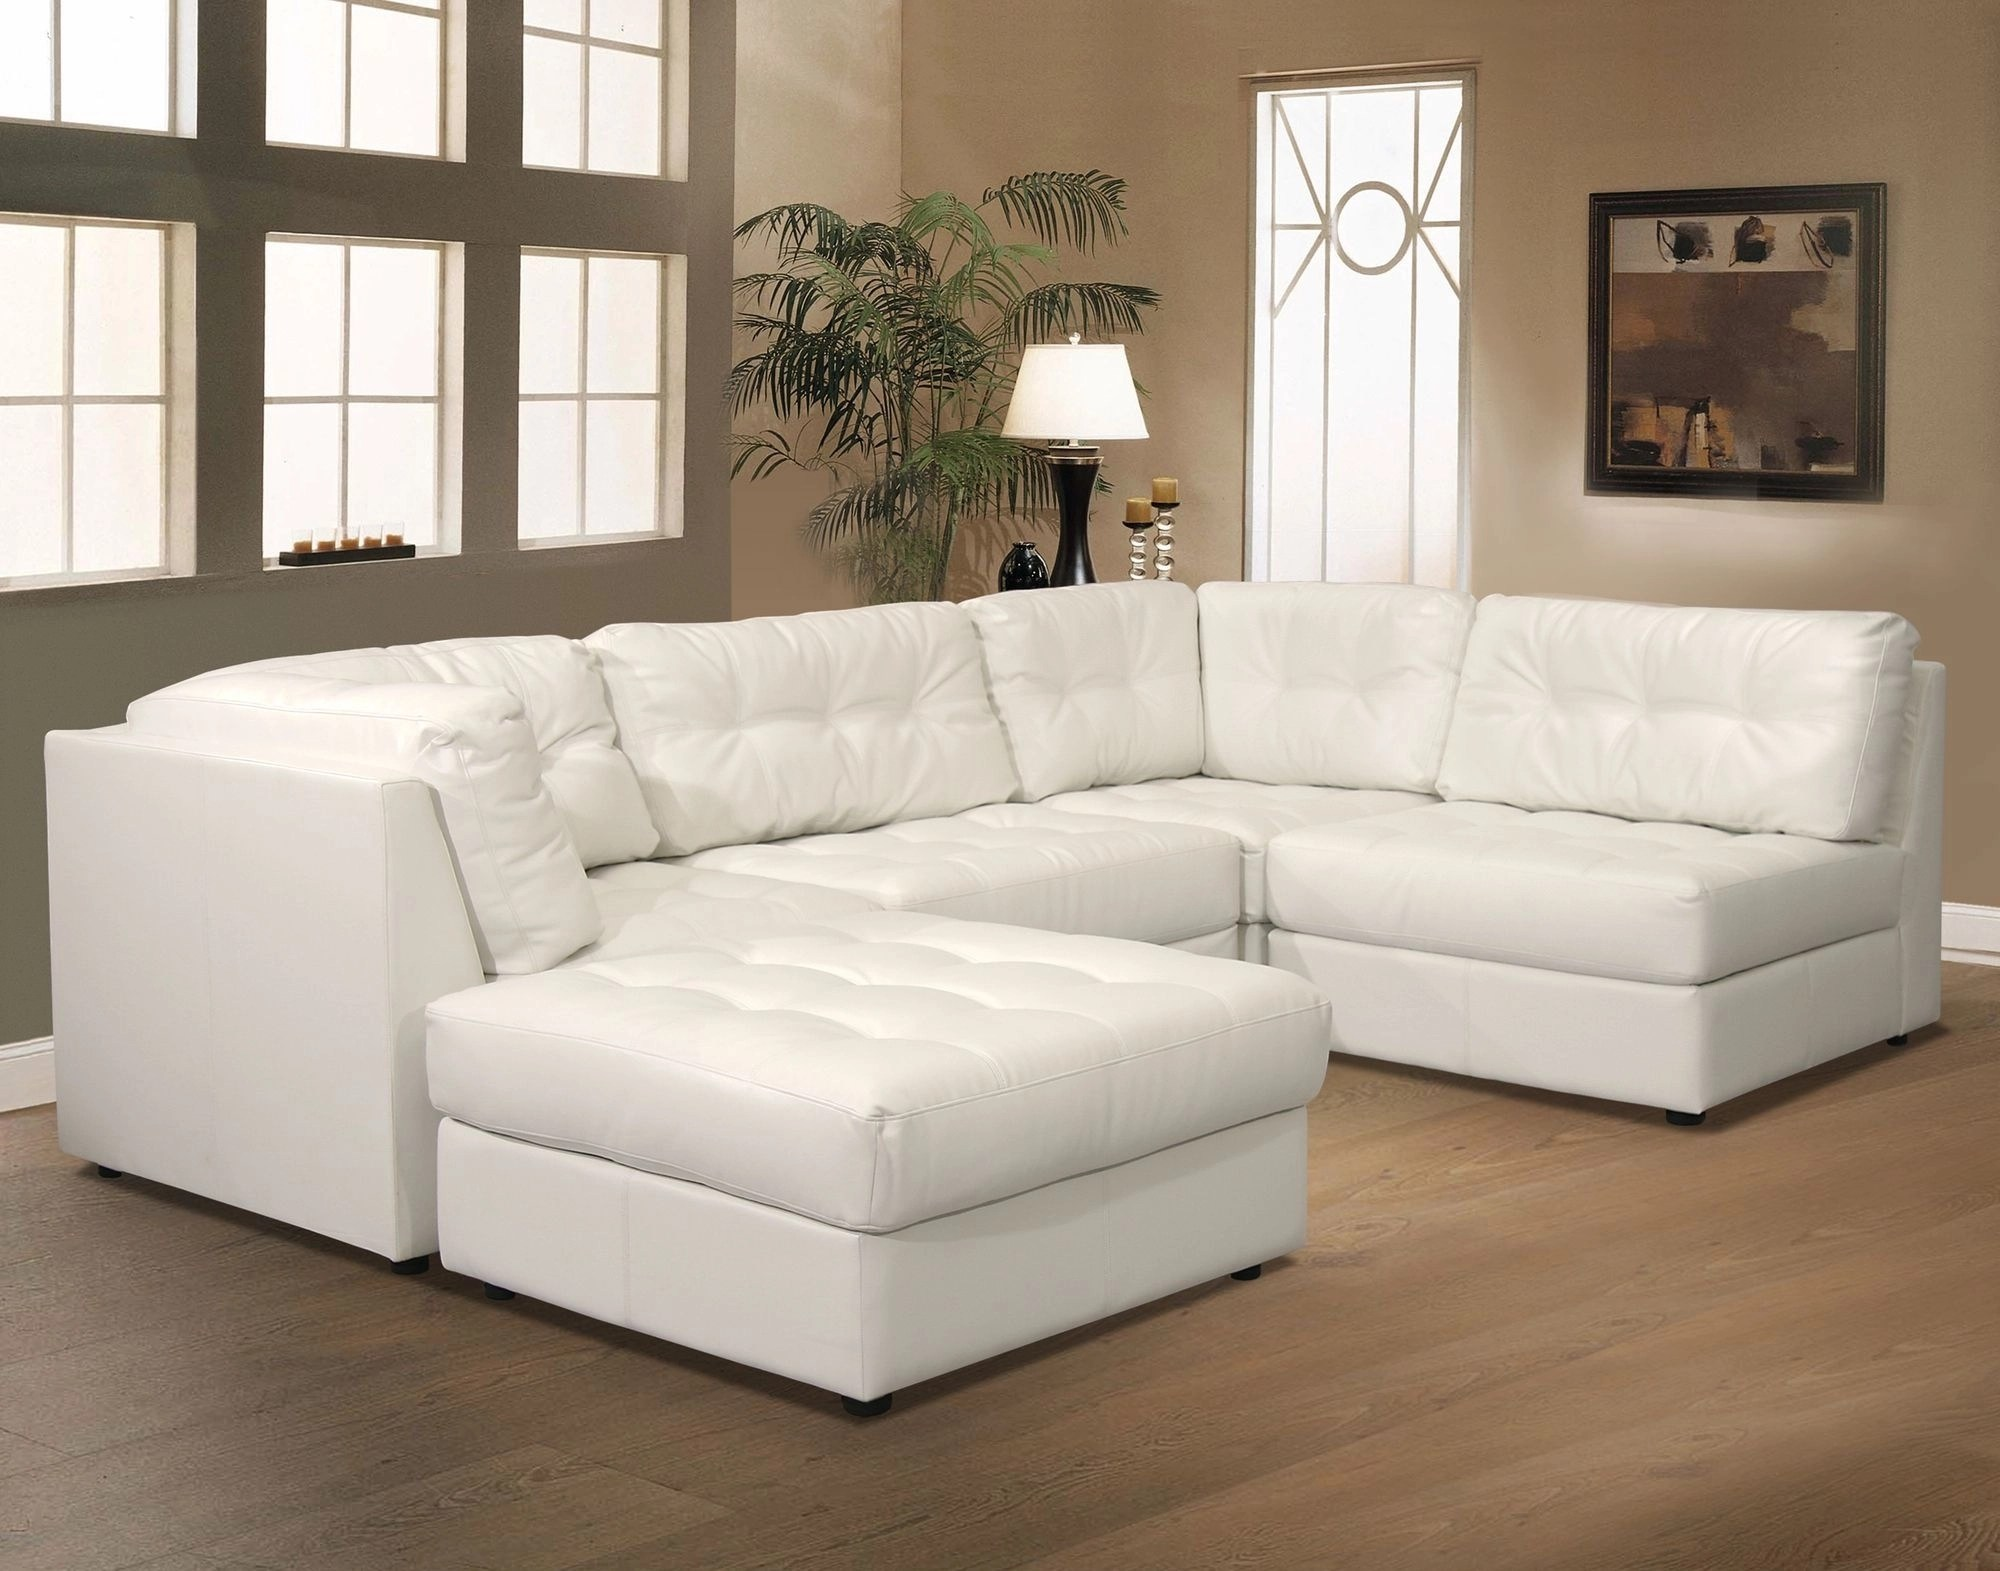 Small White Leather Sectional Ideas On Foter